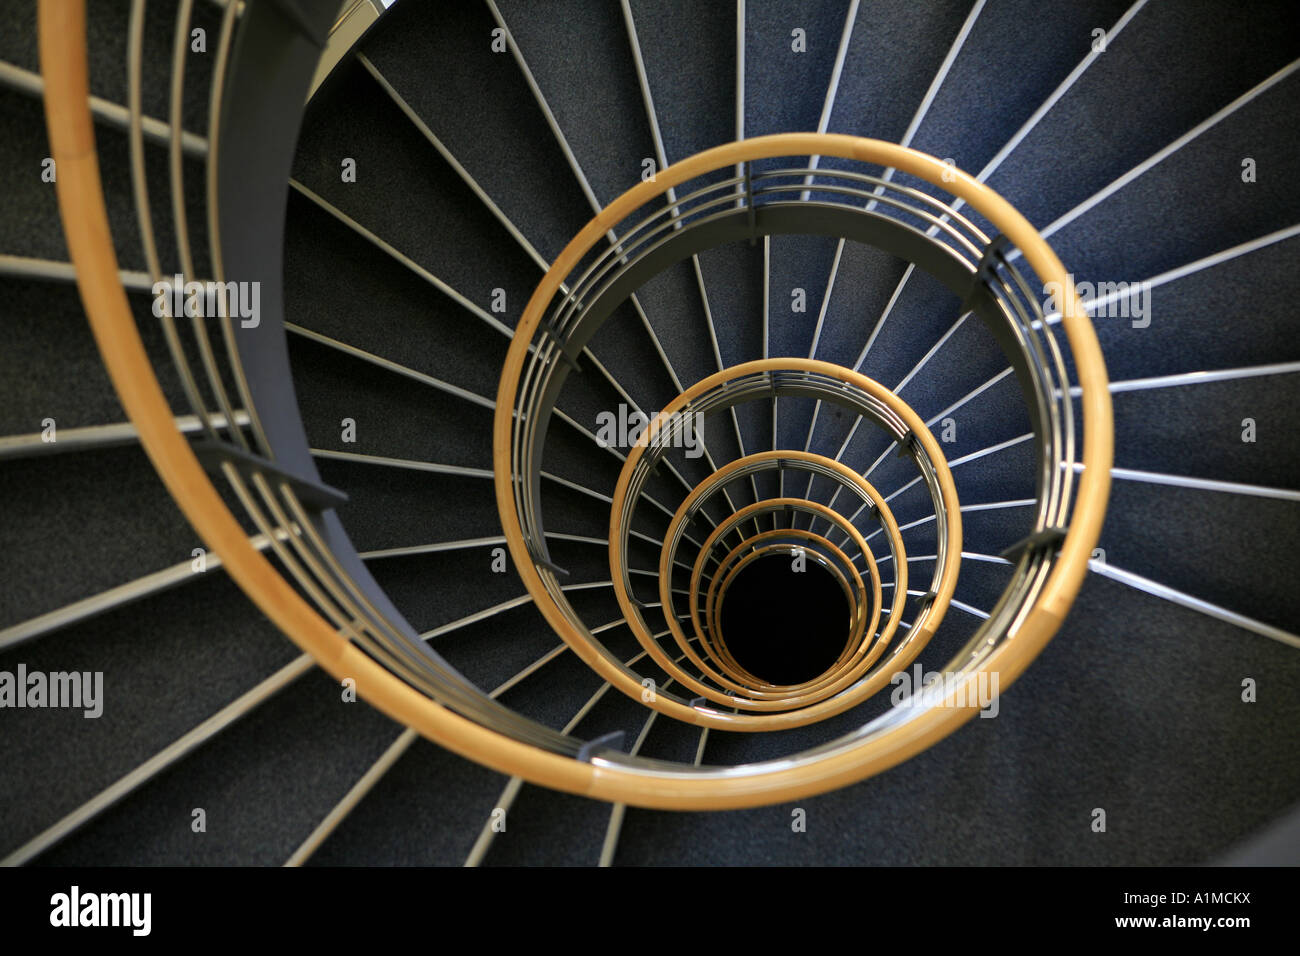 stock photo a spiral staircase in building